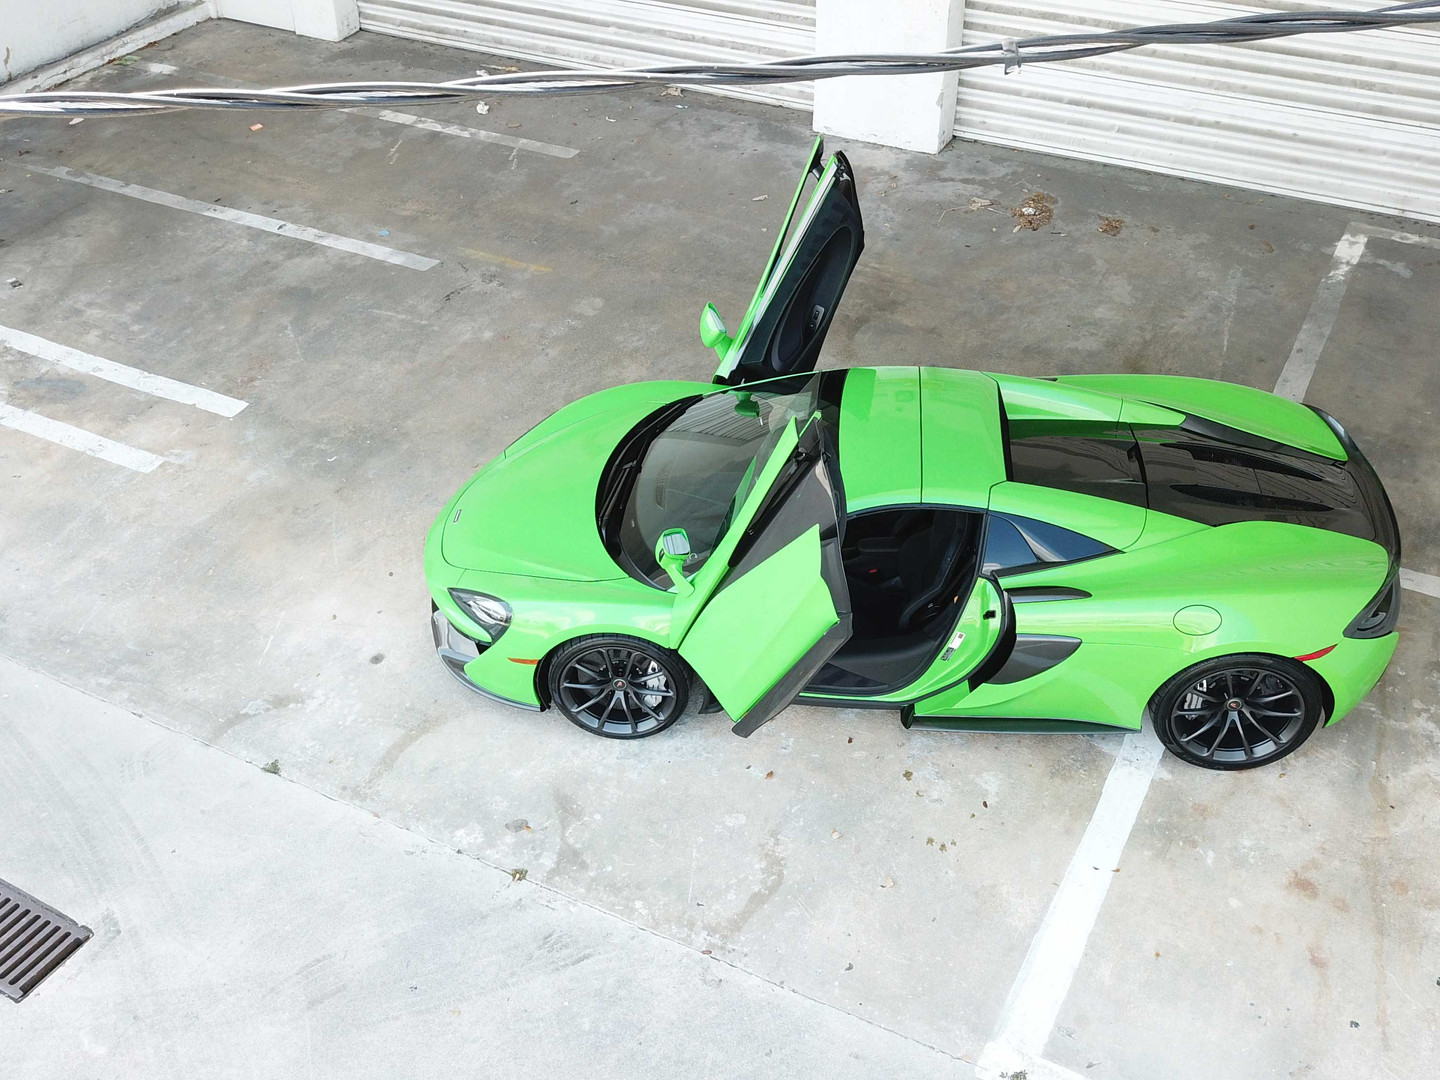 MCLARENGREEN.jpg